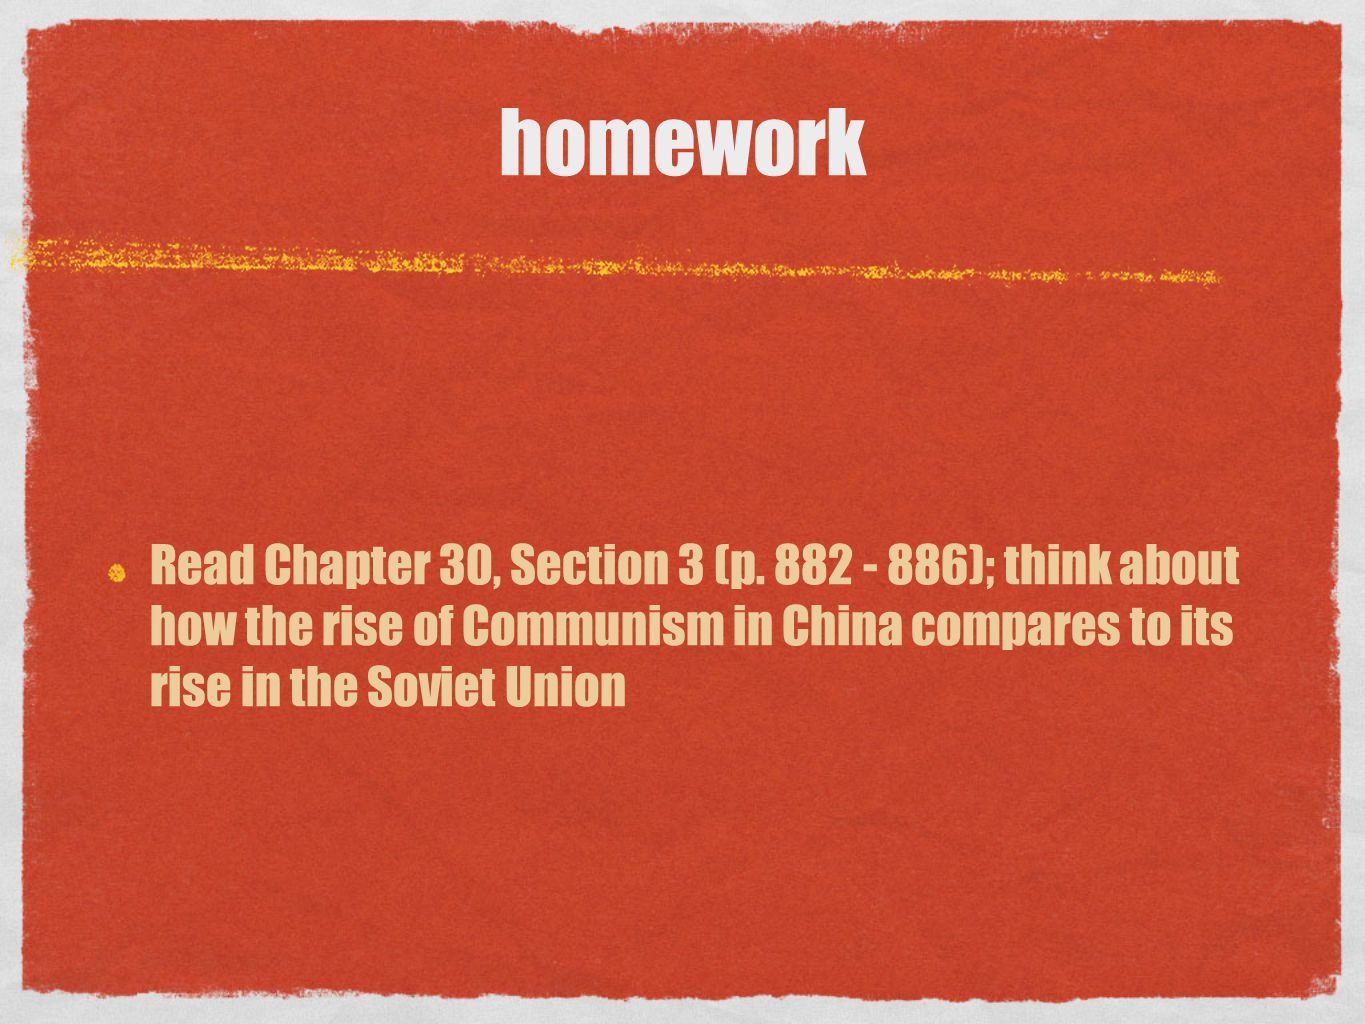 homework Read Chapter 30, Section 3 (p.